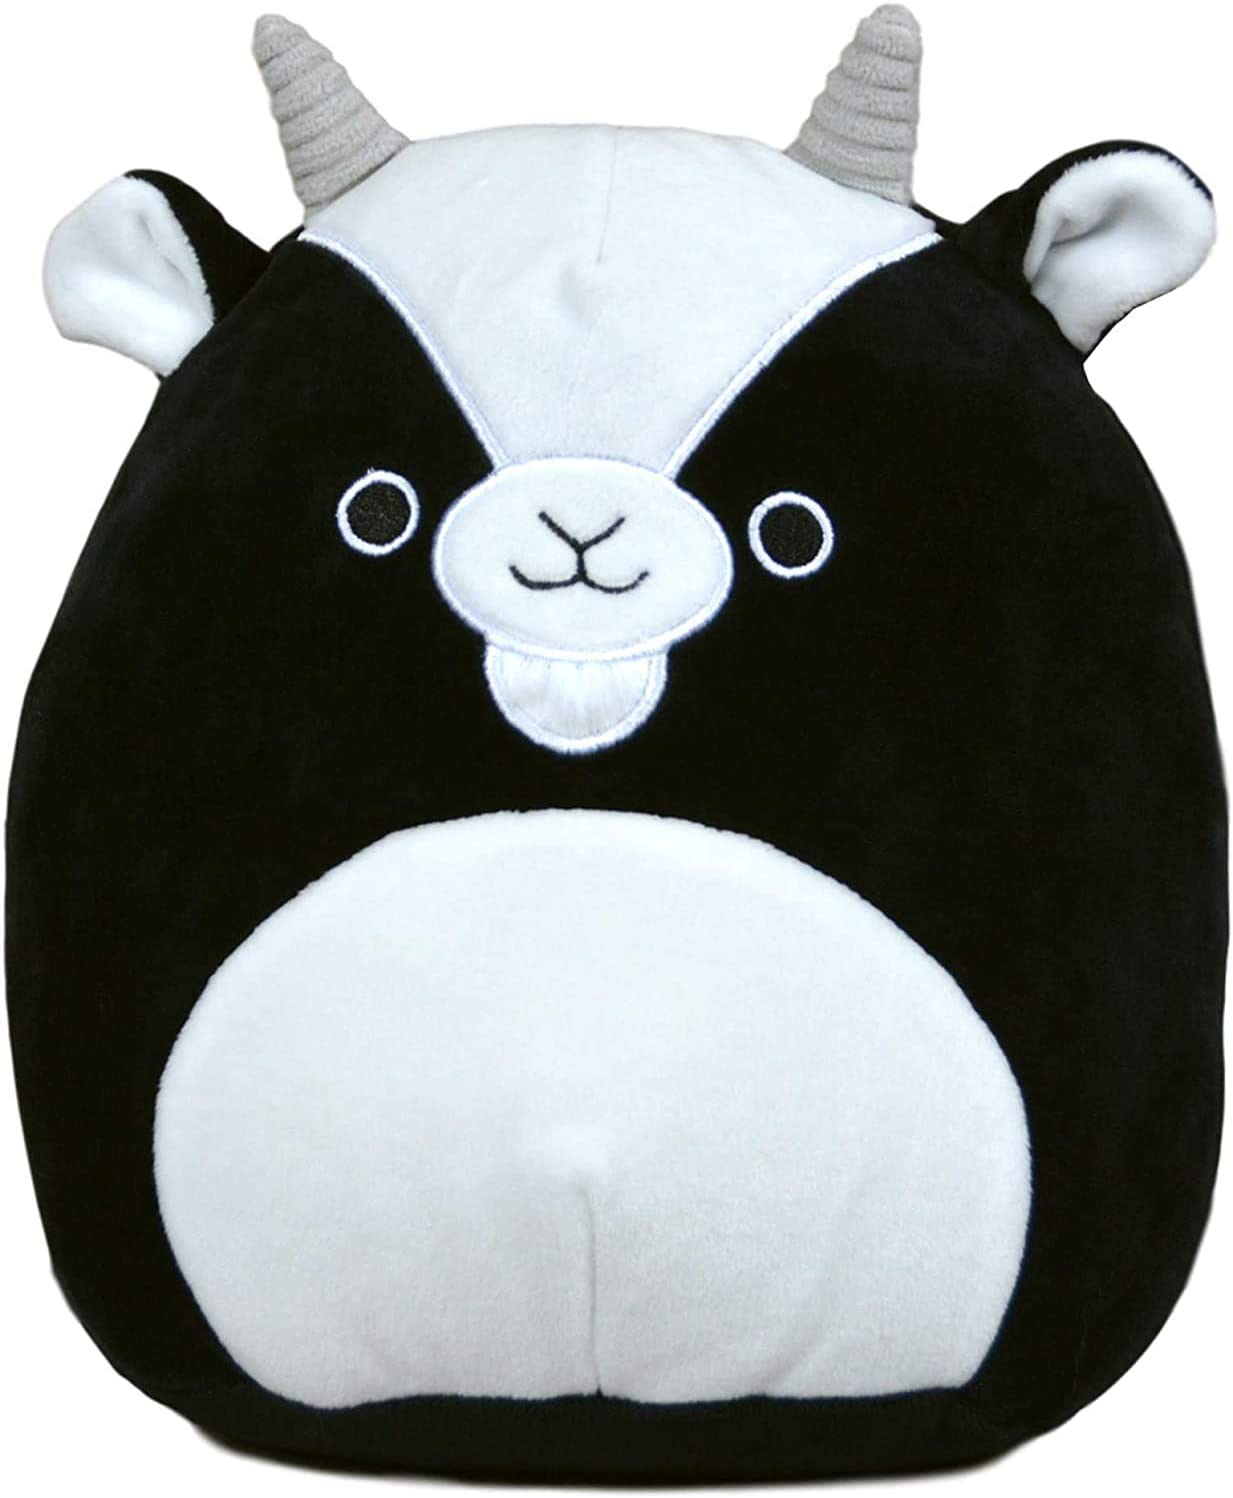 Squishmallow Kellytoy 16 Inch Gregory The Black and White Goat- Super Soft Plush Toy Animal Pillow Pal Pillow Buddy Stuffed Animal Birthday Gift Holiday